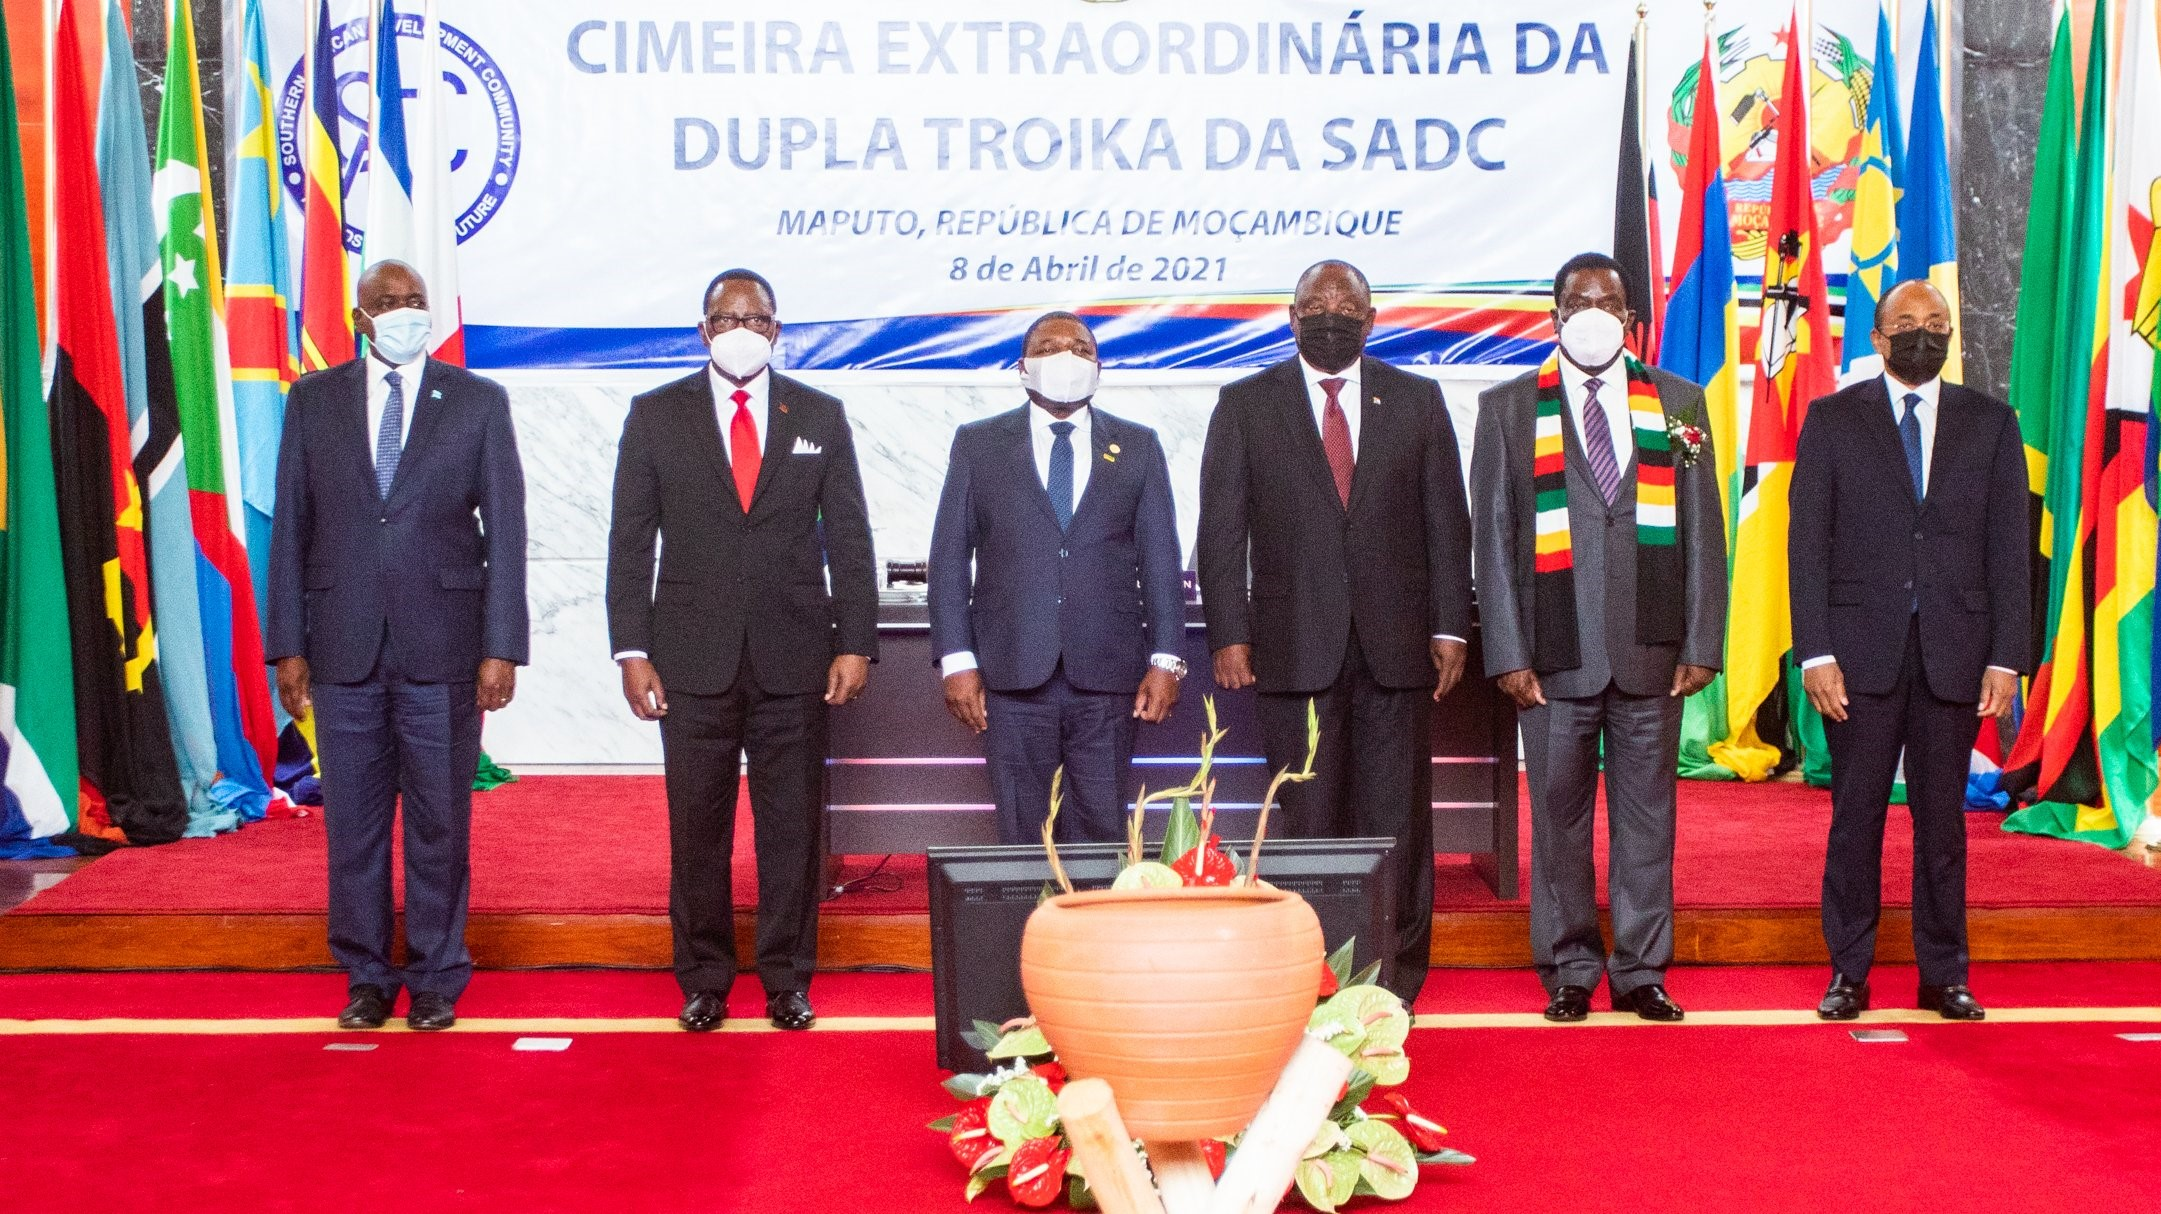 What will SADC's response to the conflict in Cabo Delgardo, Mozambique look like?